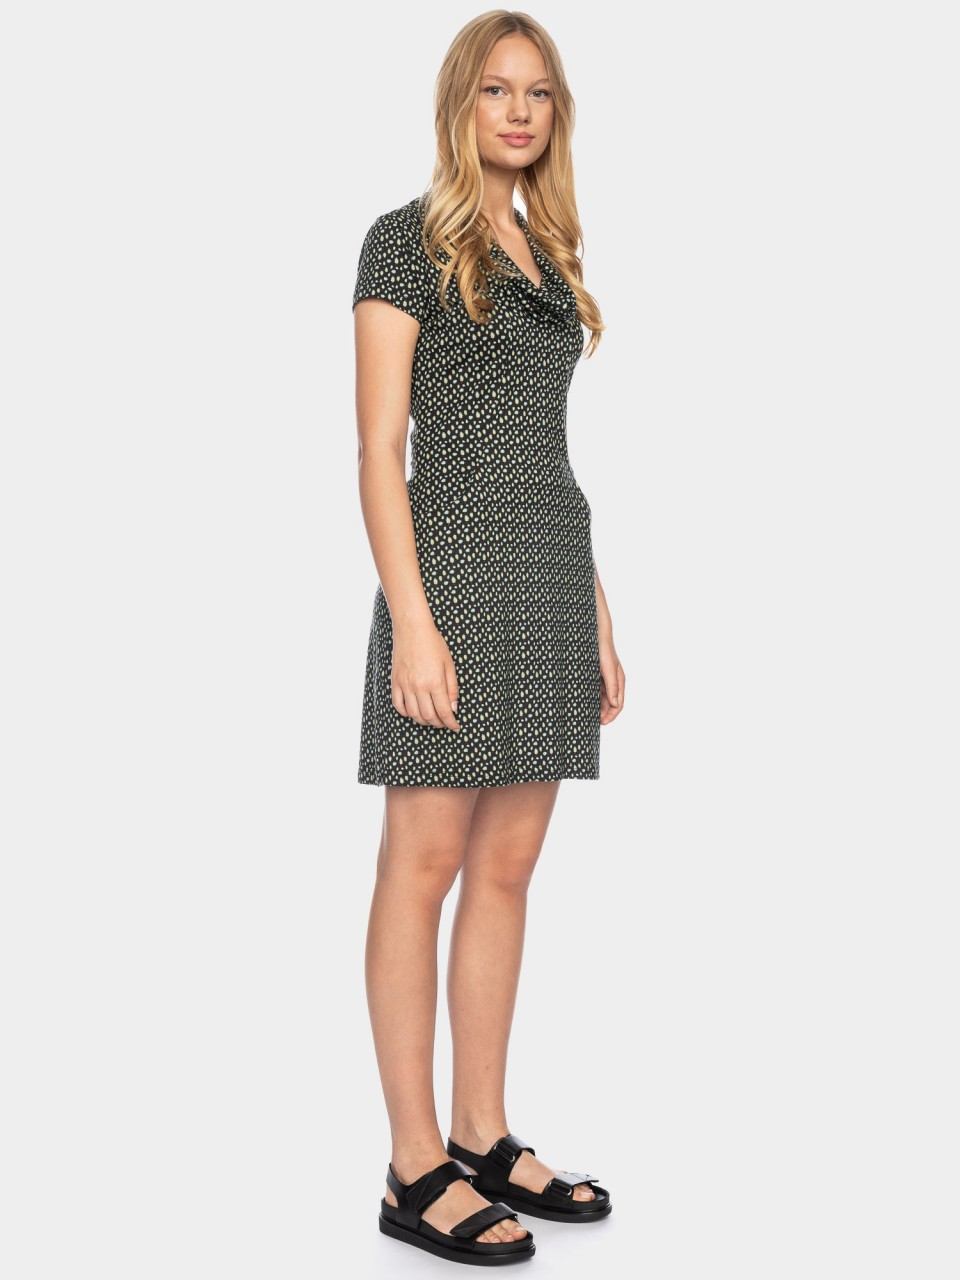 Kleid Erbse CLY/CO 14/044 BLK/GRN